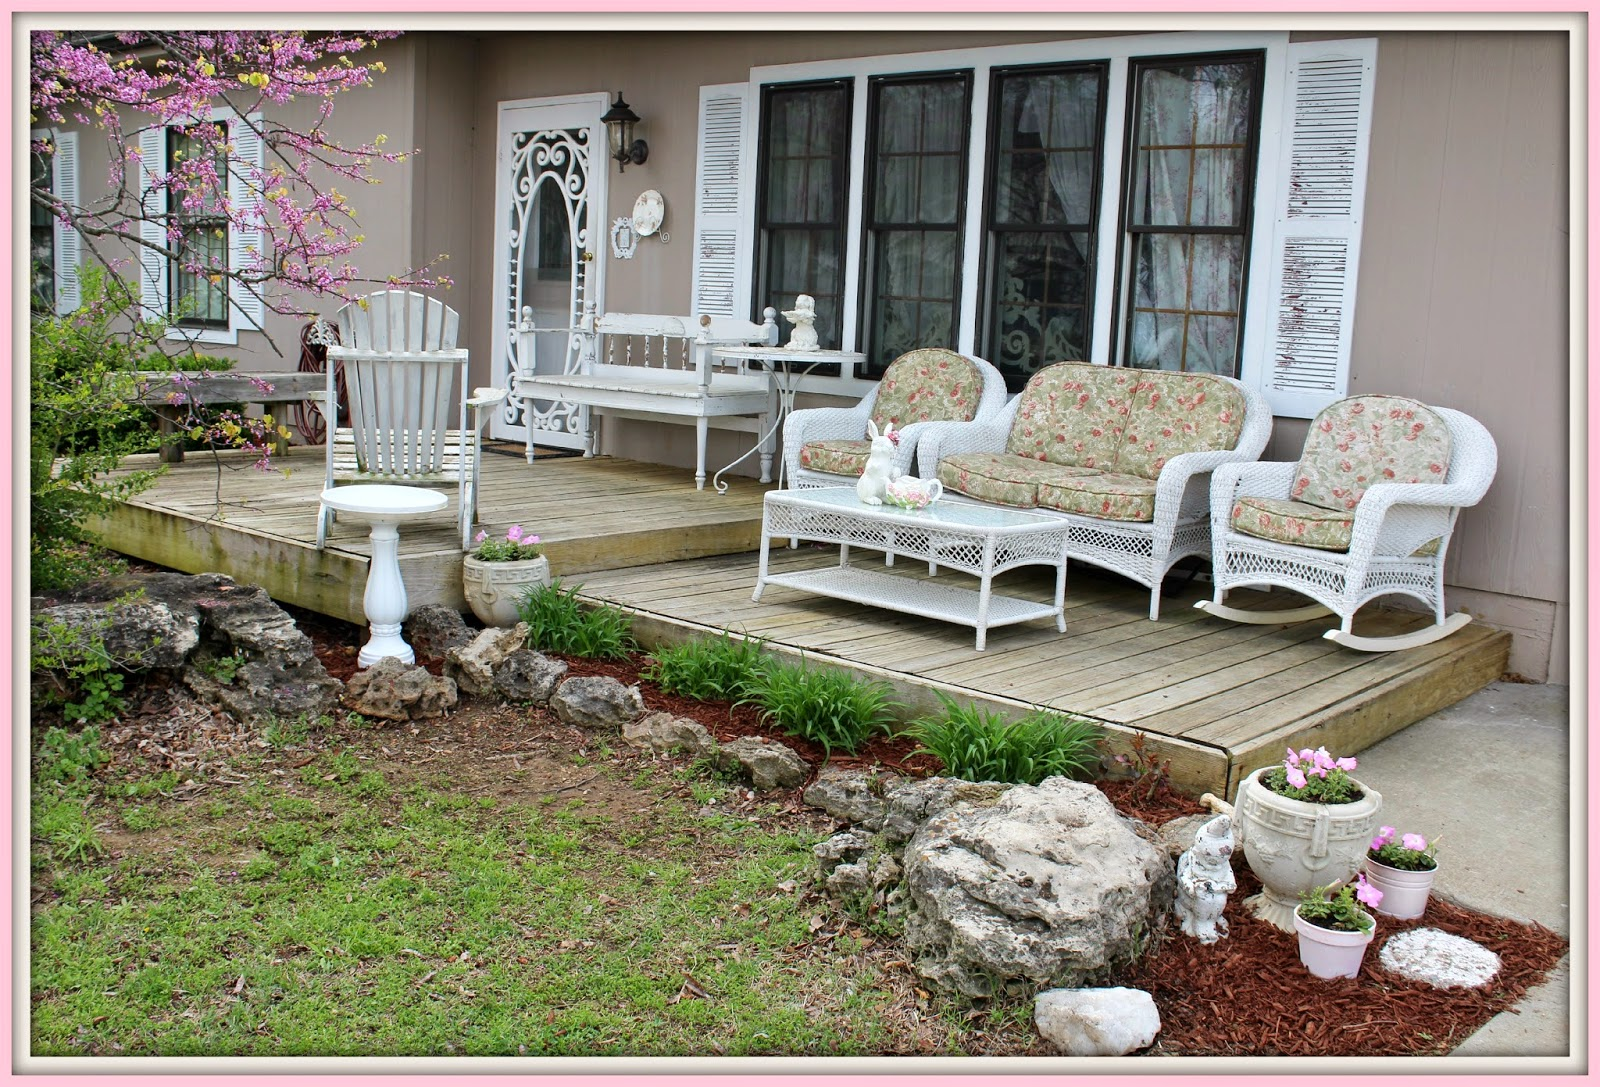 Olivia's Romantic Home: Shabby Chic Front Porch